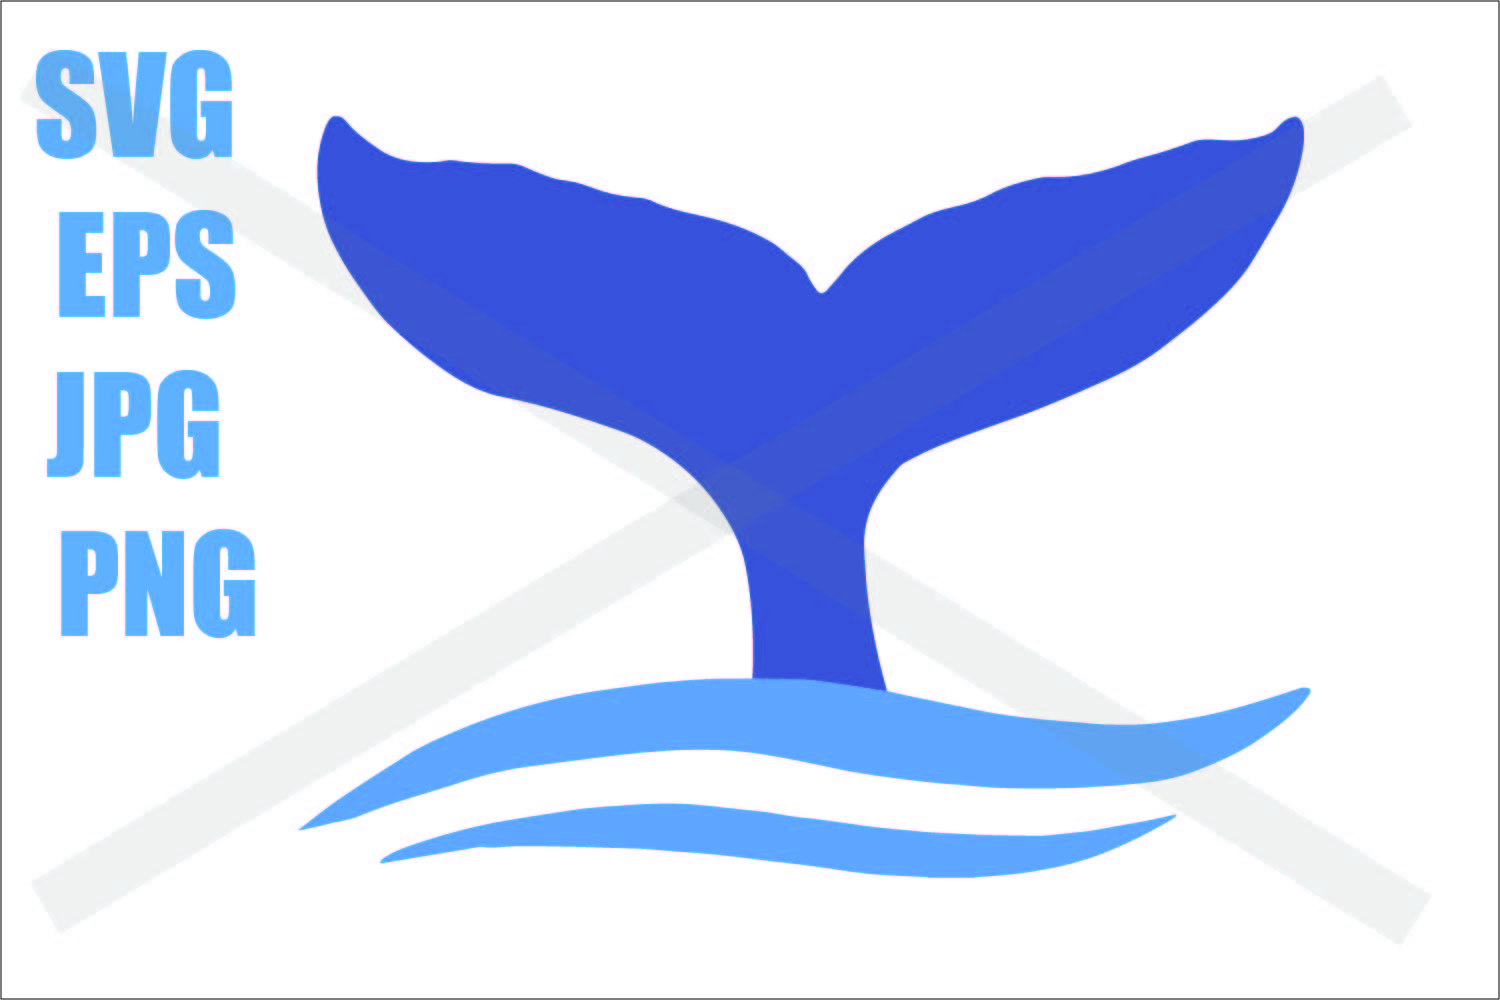 Whale Tail - SVG EPS JPG example image 1